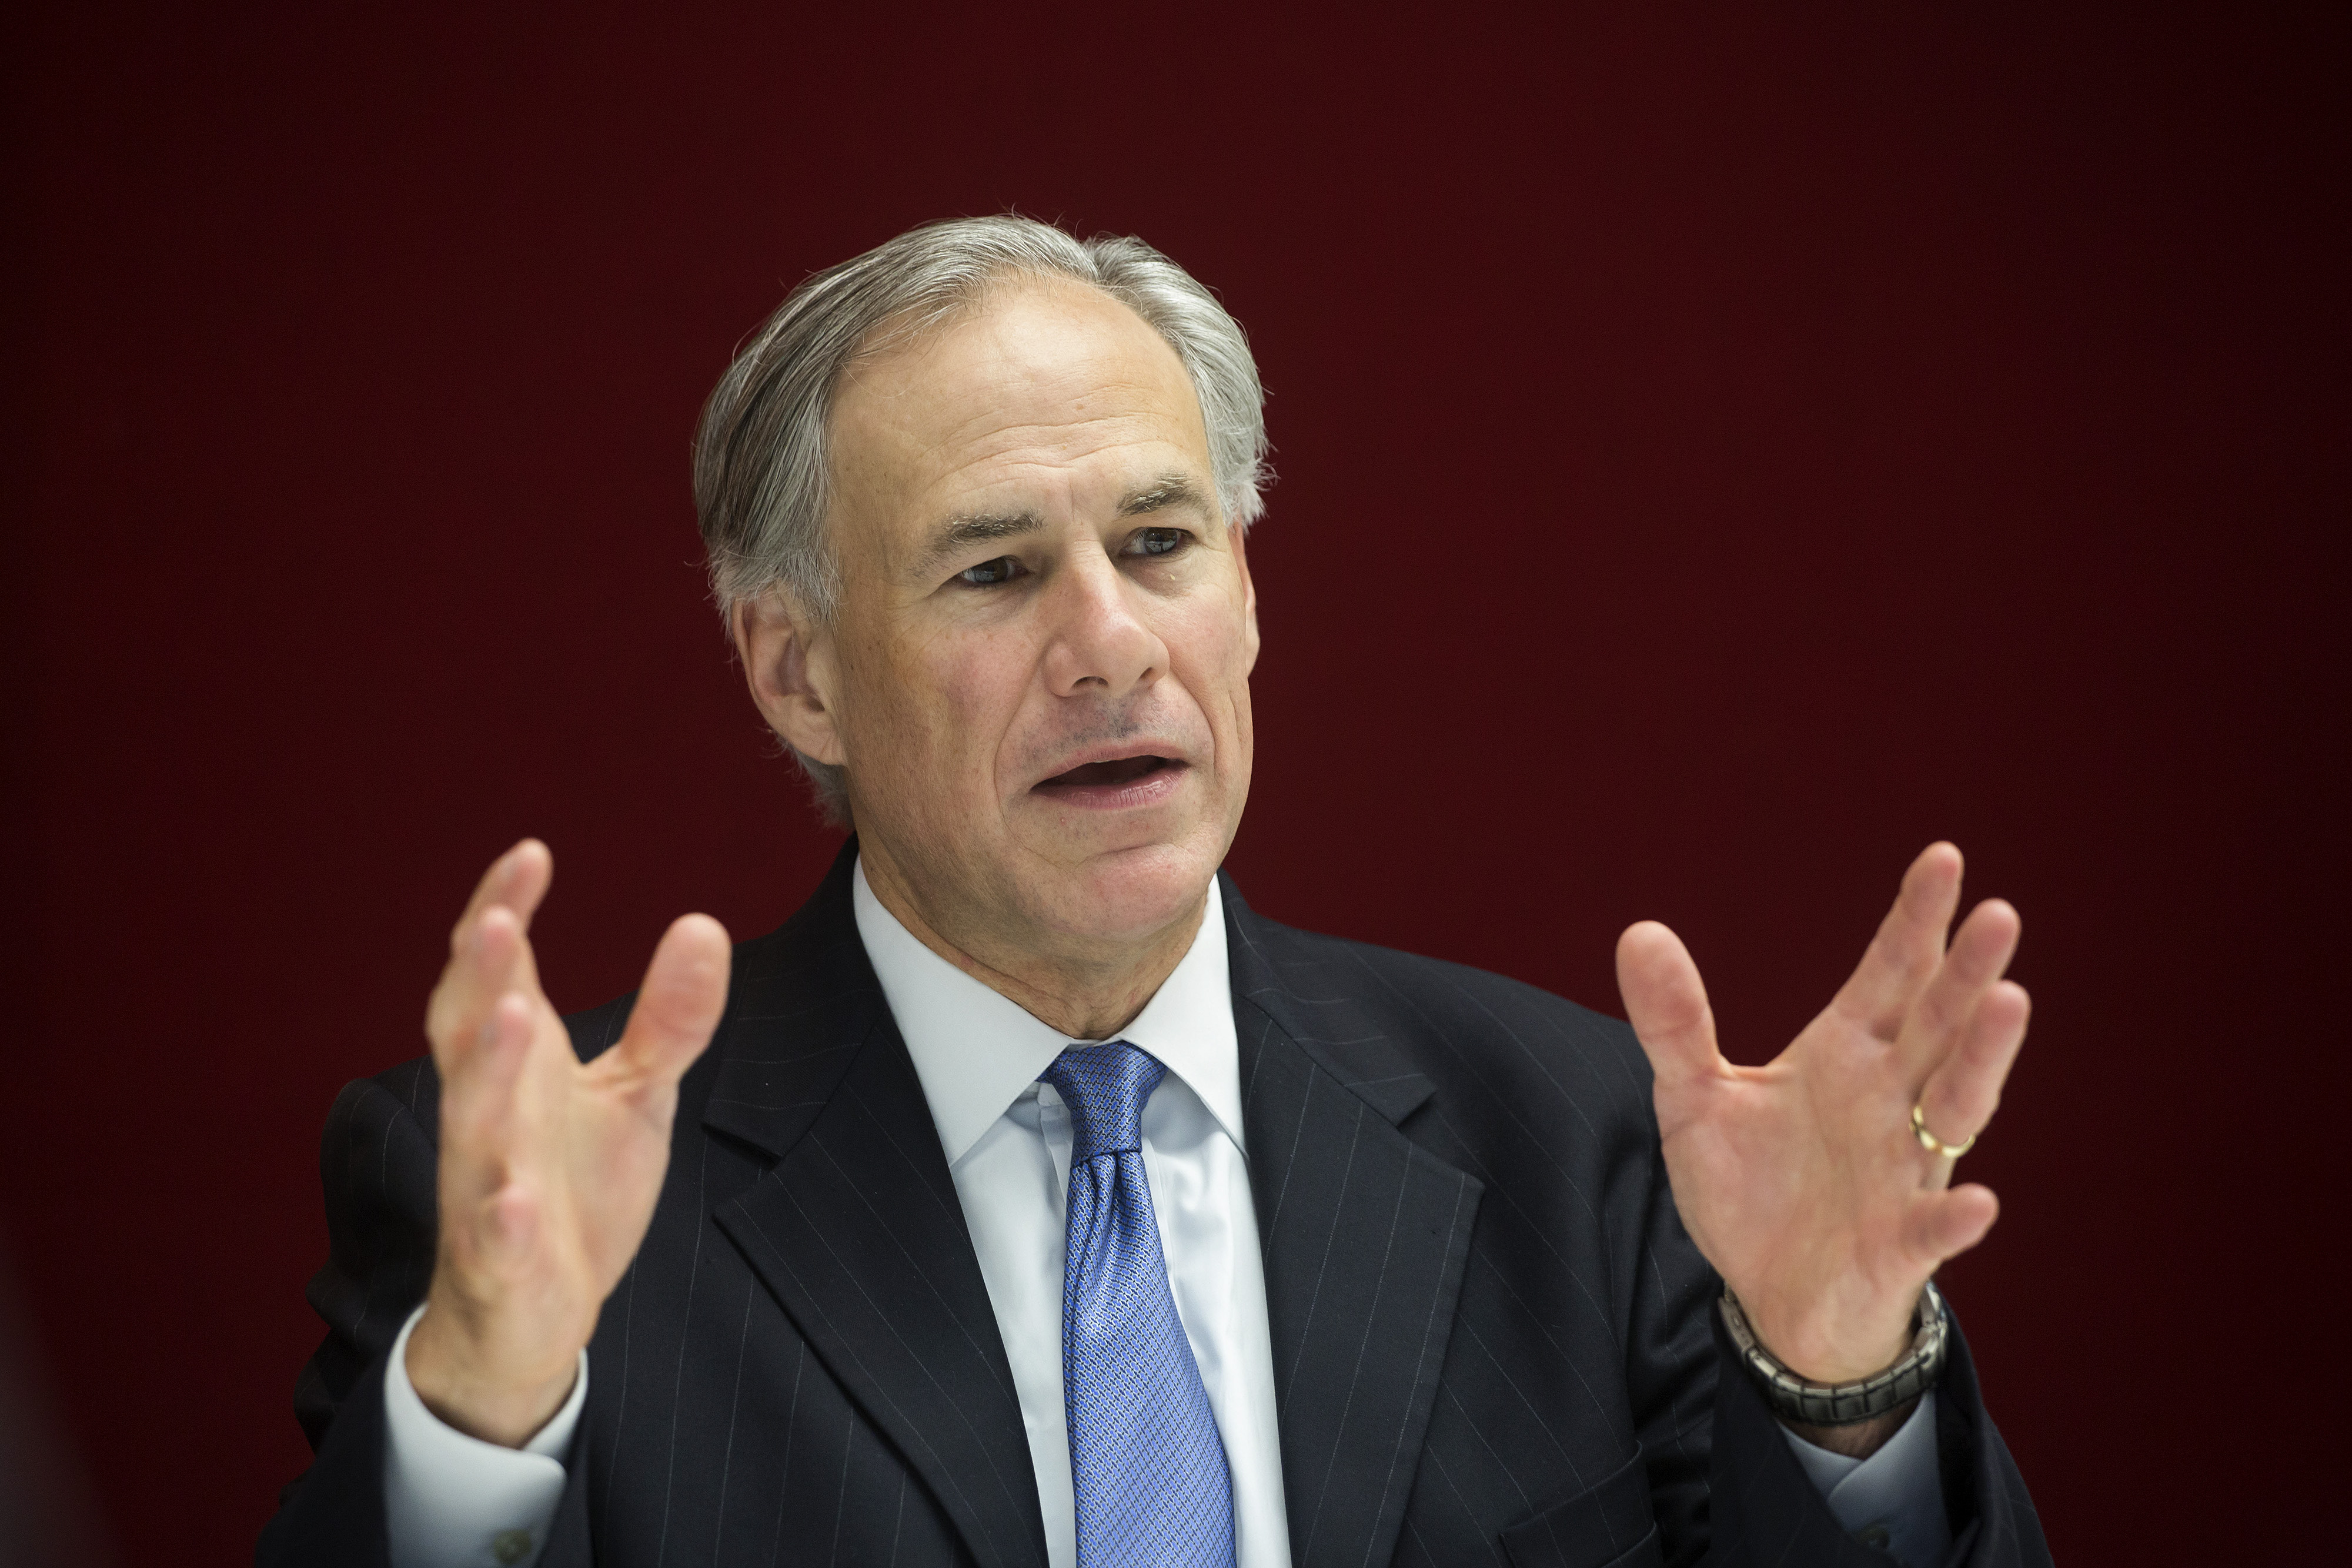 Greg Abbott, governor of Texas, speaks during an interview in New York, on  July 14, 2015.